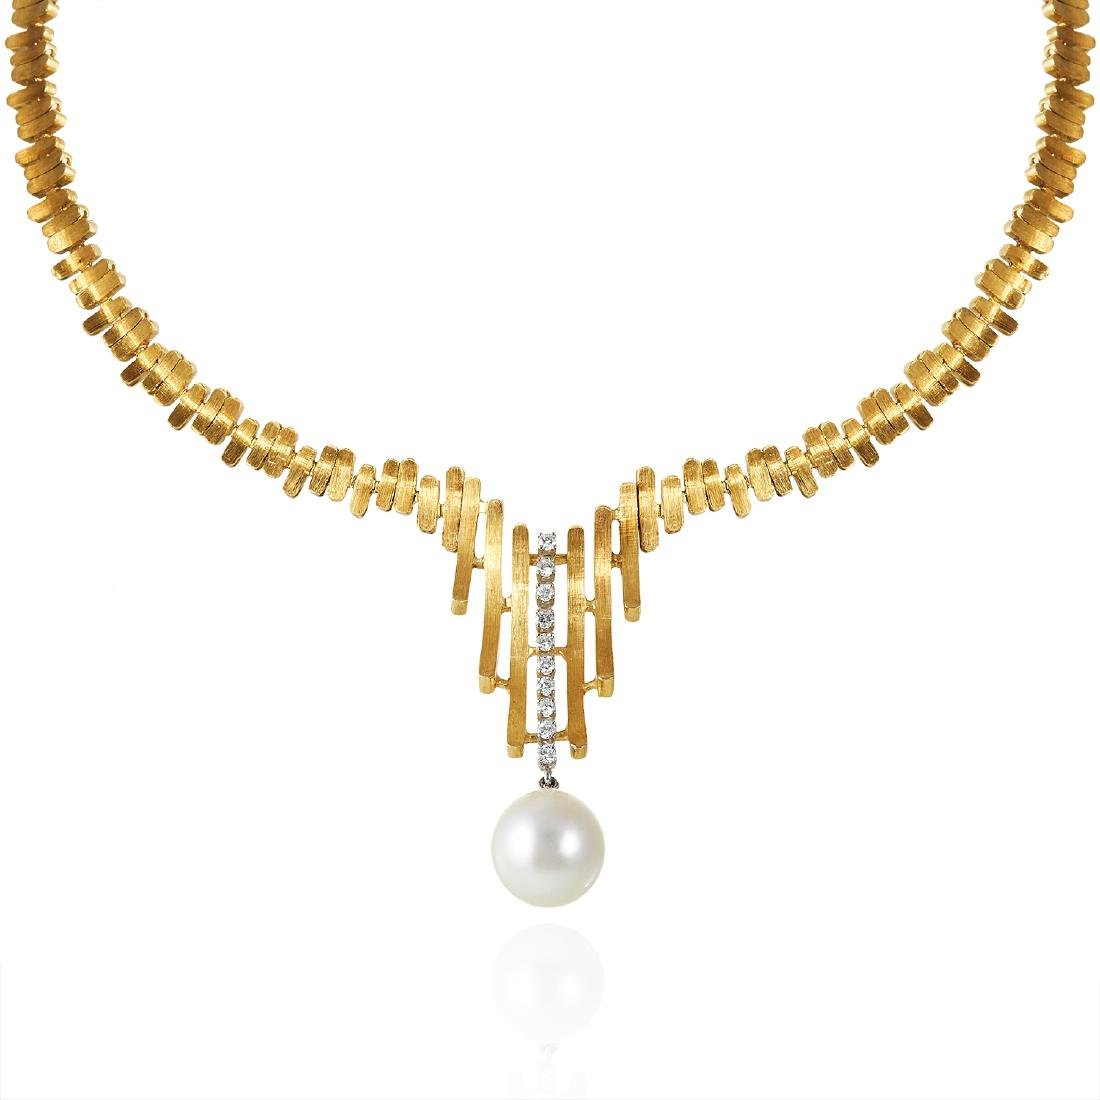 A PEARL AND DIAMOND NECKLACE, ITALIAN in 18ct yellow